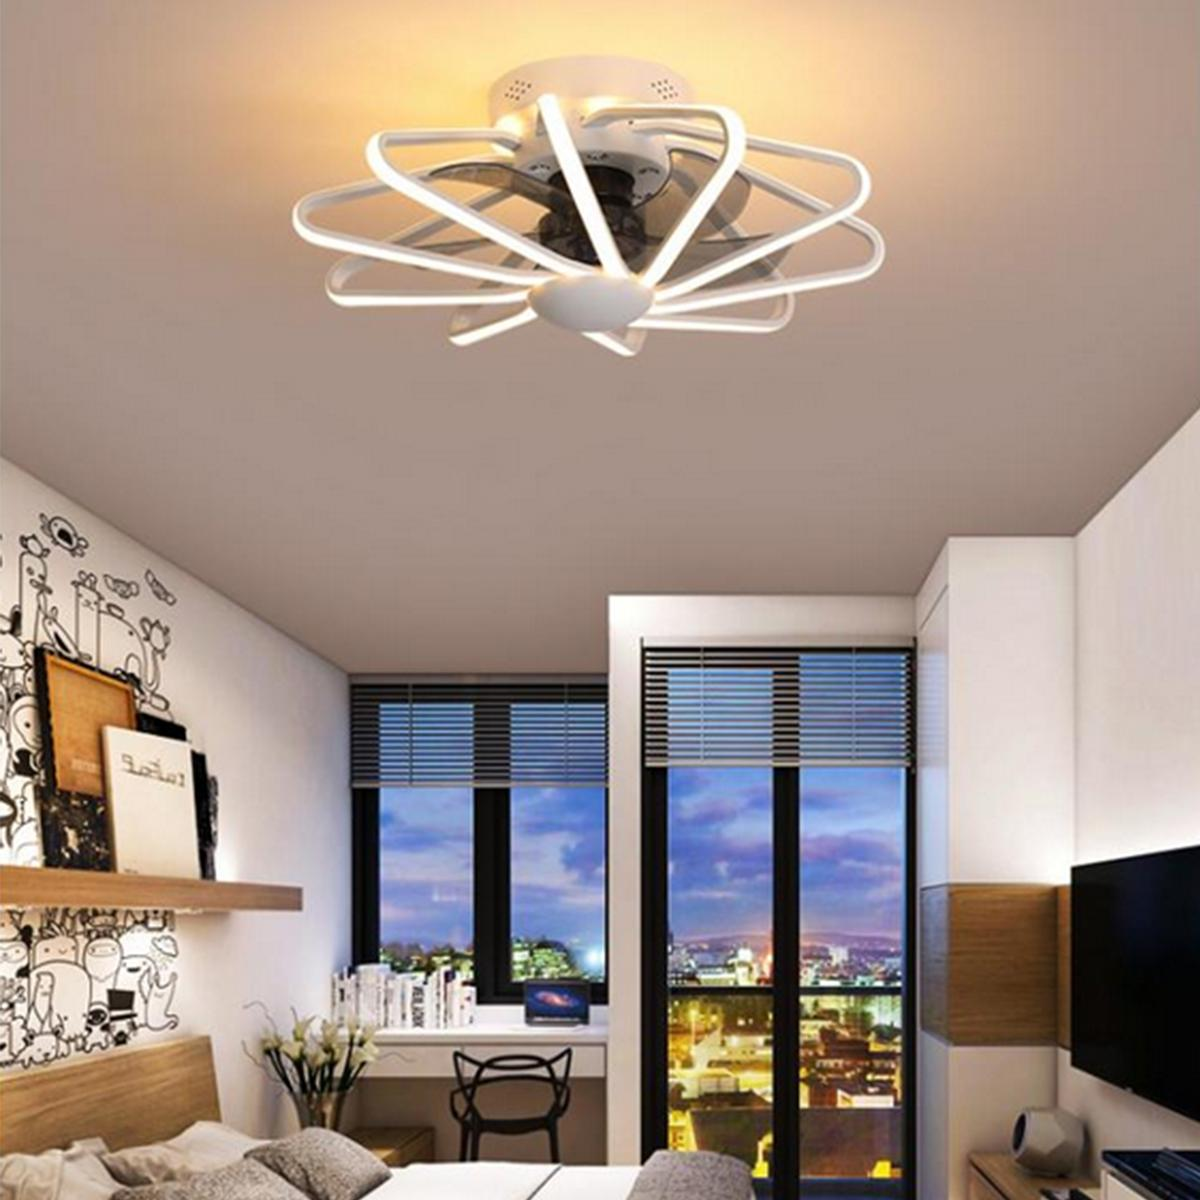 ceiling fan with light kit remote control